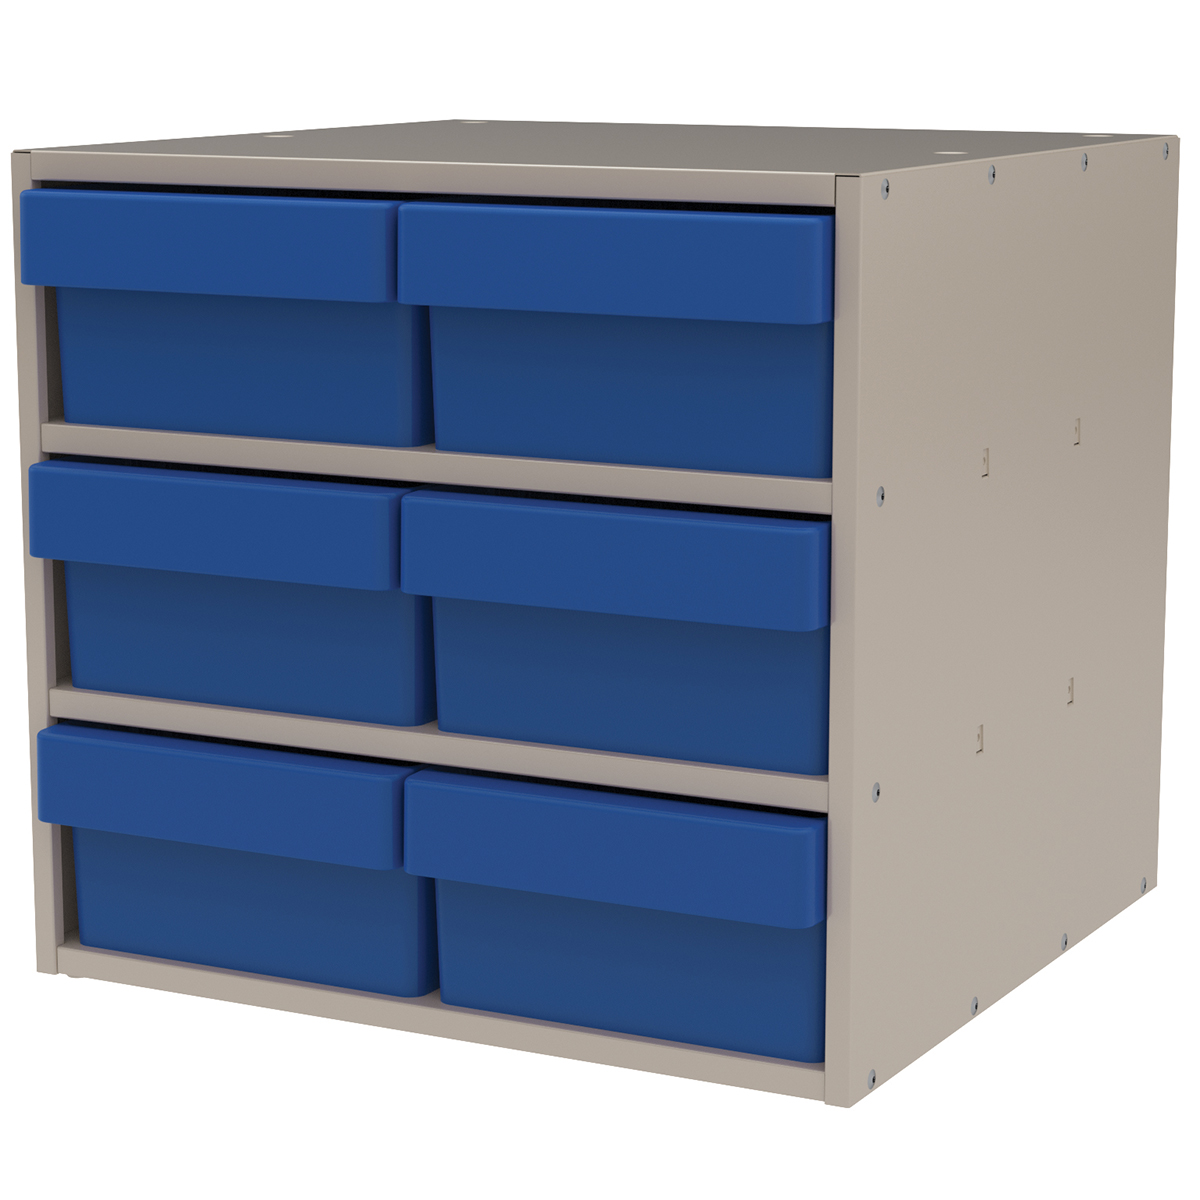 Item DISCONTINUED by Manufacturer.  Modular Cabinet, 18x17x16, 6 Drawers, Putty/Blue (AD1817P88BLU).  This item sold in carton quantities of 1.